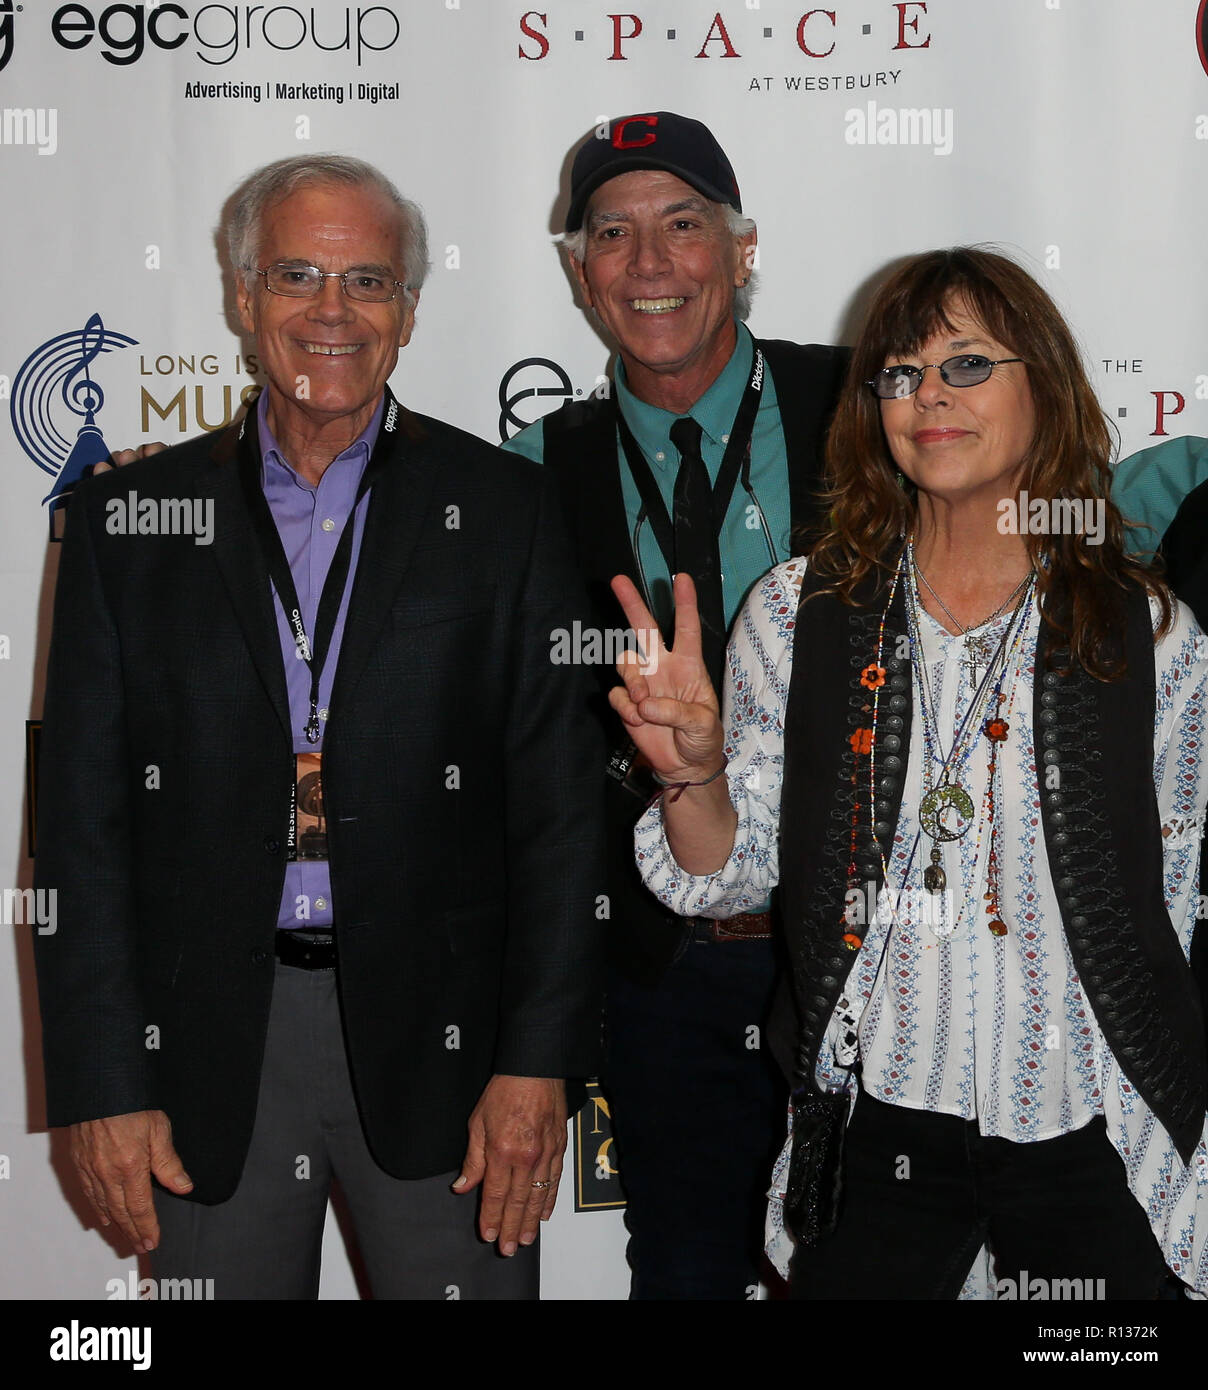 Westbury, United States. 08th Nov, 2018. WESTBURY, NY - NOV 8: (L-R) Paul Cowsill, Bob Cowsill and Susan Cowsill of the Cowsills attend the 2018 Long Island Music Hall of Fame induction ceremony at The Space at Westbury on November 8, 2018 in Westbury, New York. Credit: The Photo Access/Alamy Live News Stock Photo